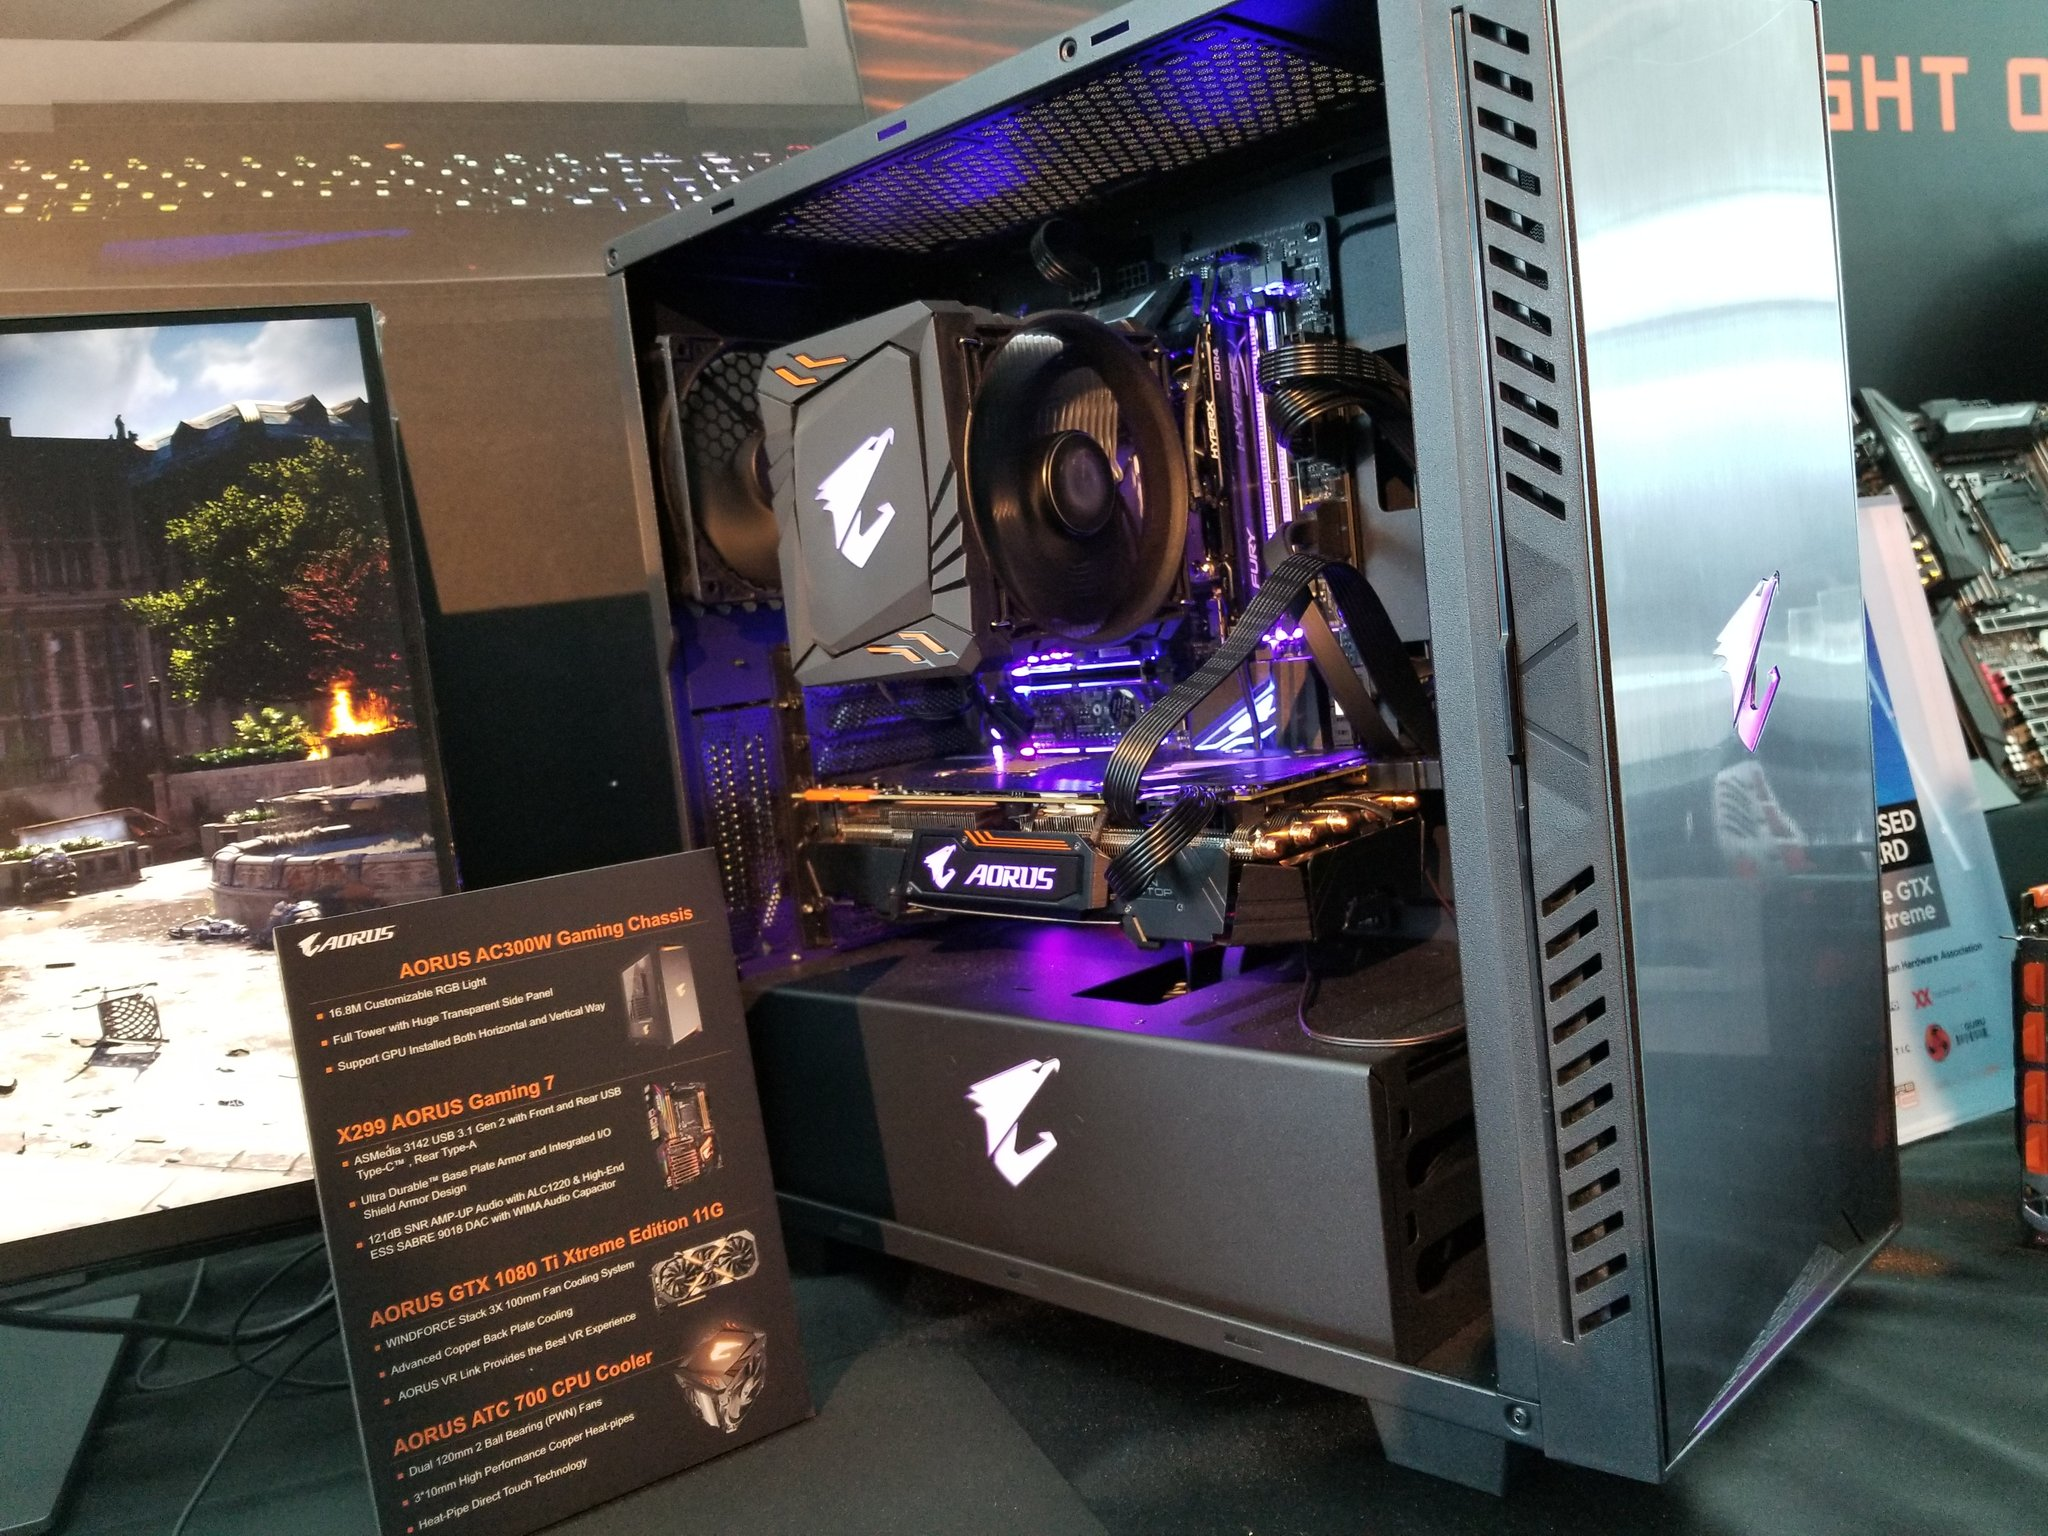 Aorus On Twitter Quot Welcome The New Aorus X299 Gaming 7